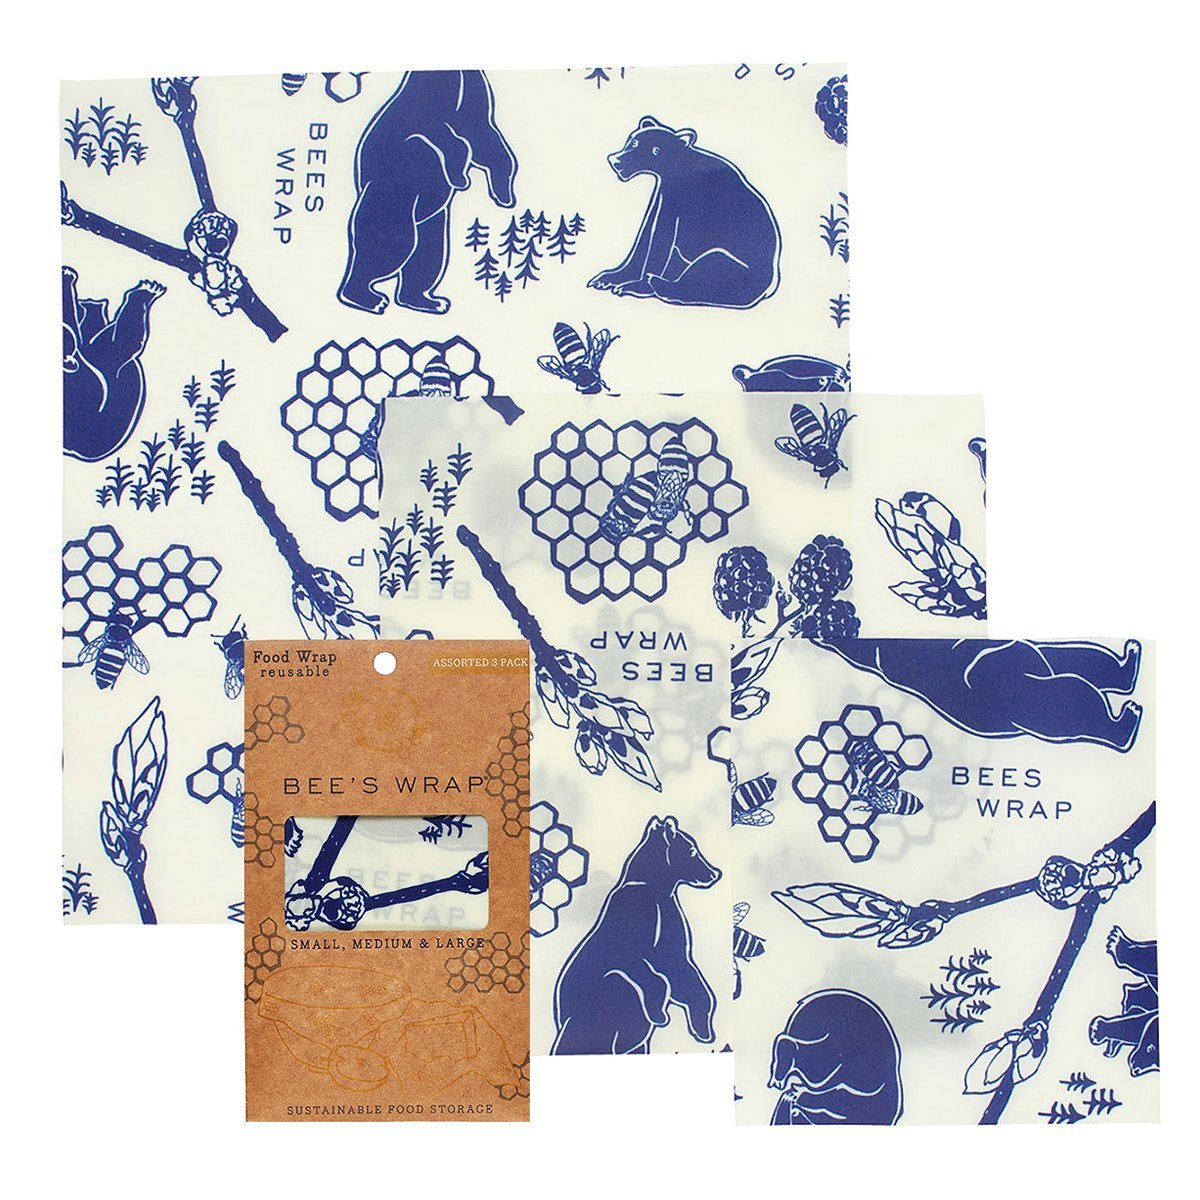 Bees Wrap - Assorted 3 Pack